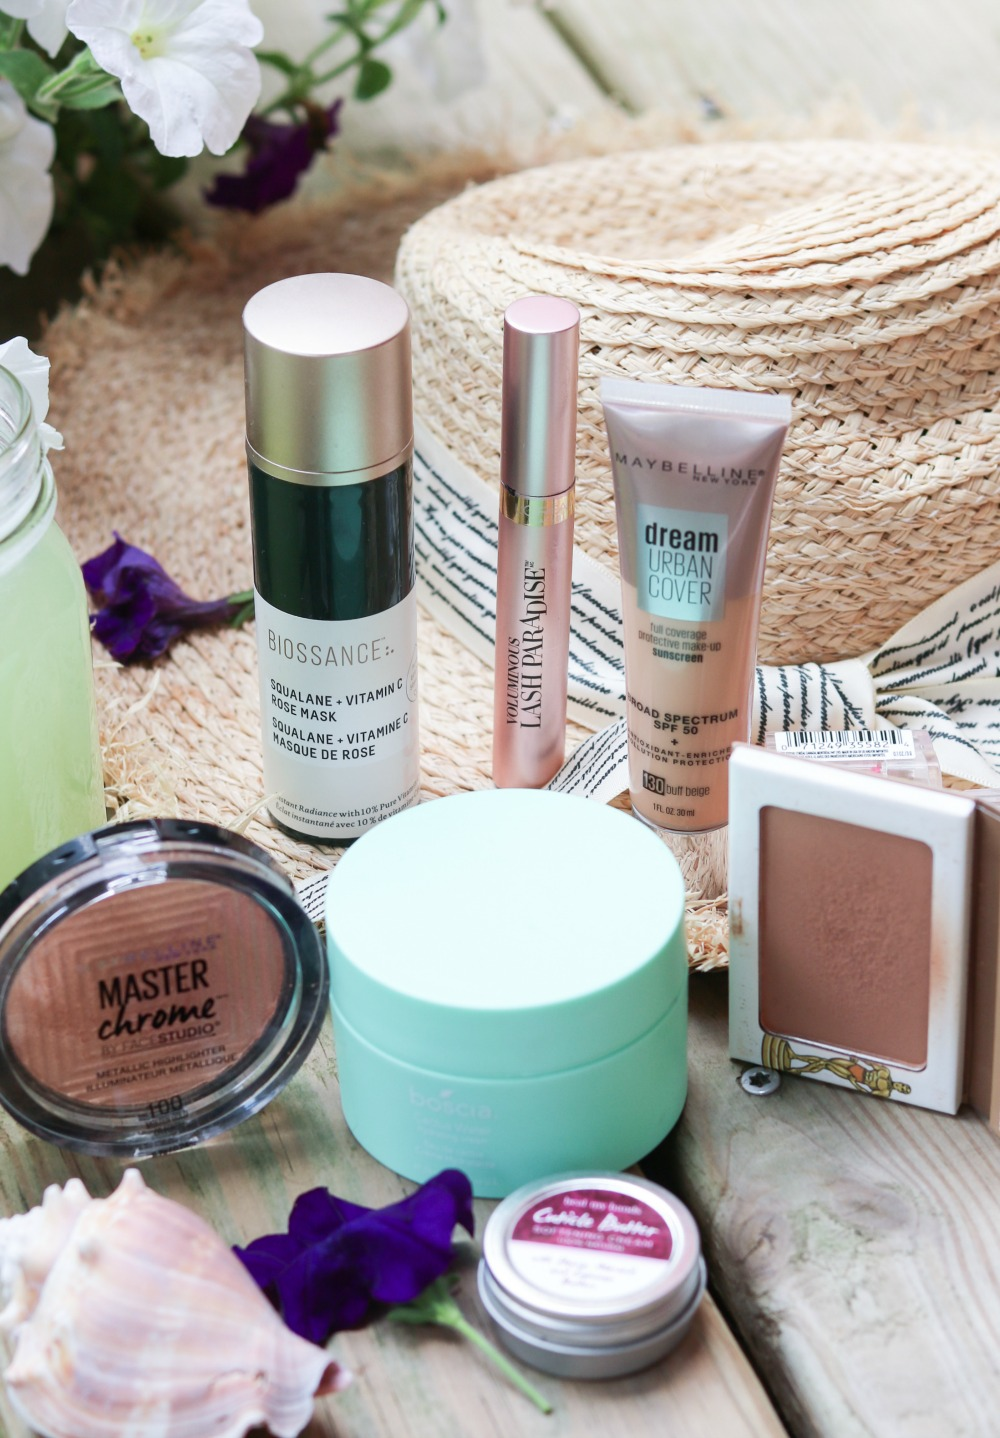 Summer Beauty Favorites I DreaminLace.ccom #BeautyTips #SummerMakeup #Makeup